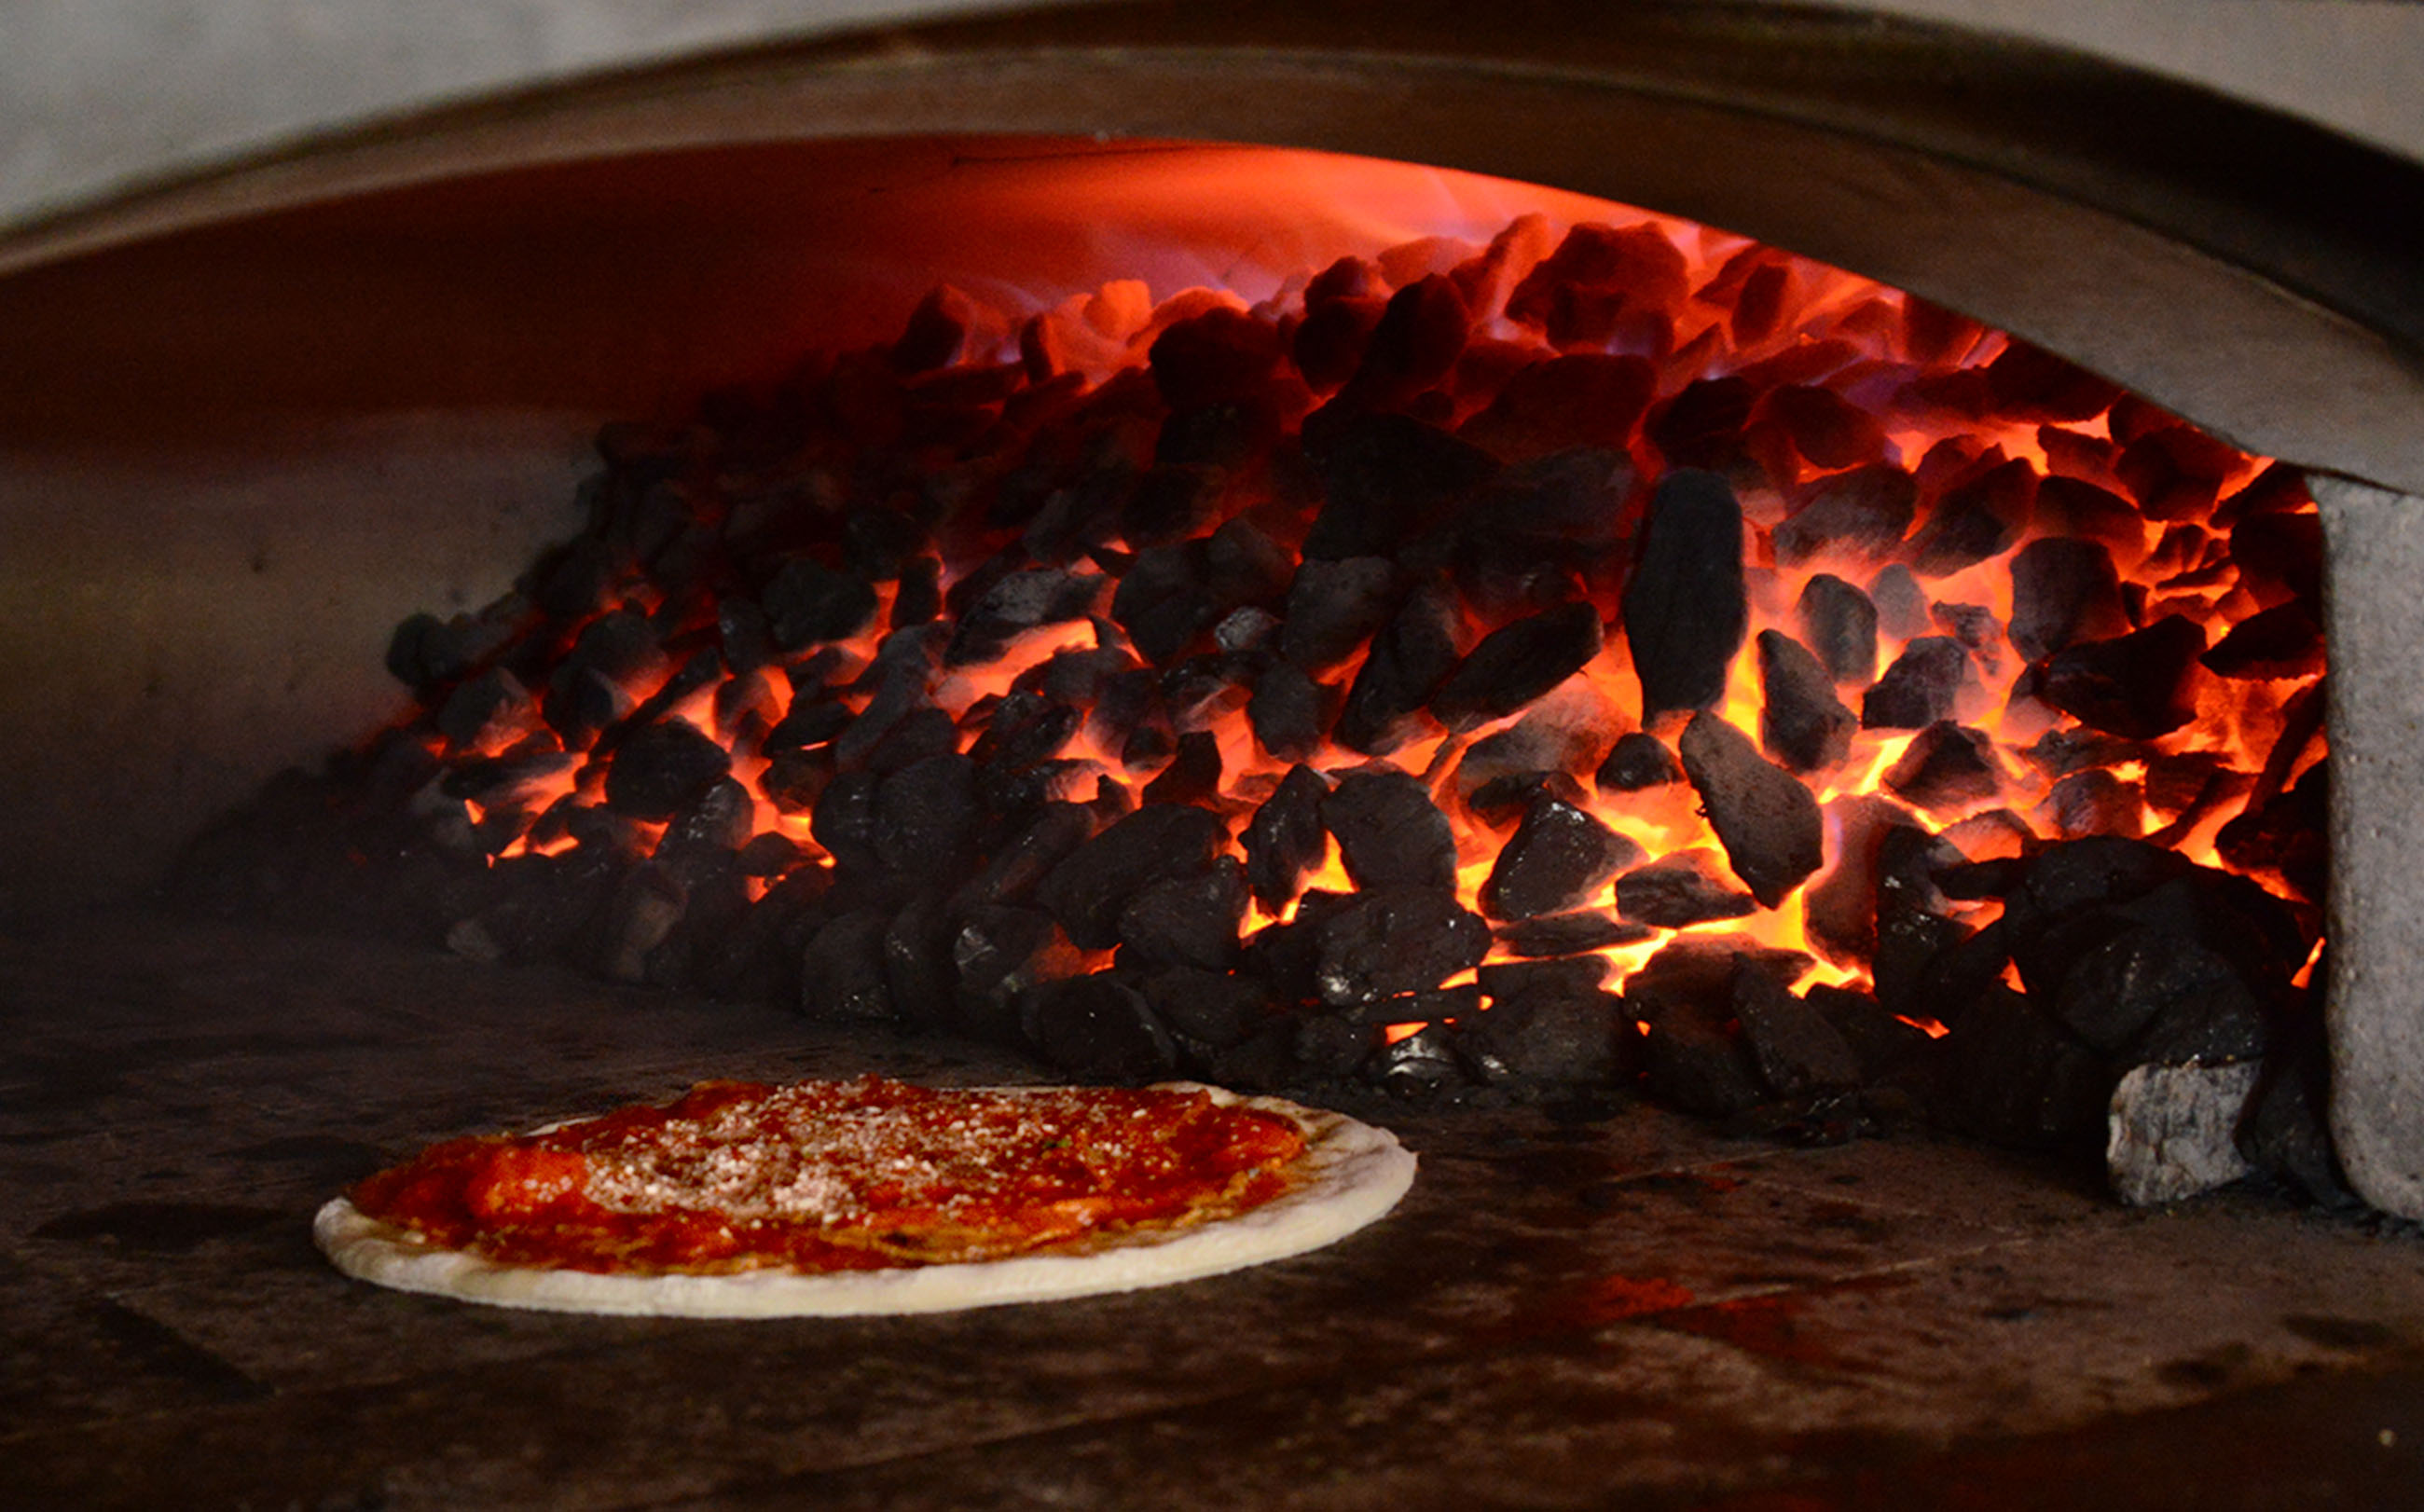 How To Cook A Pizza Pennsylvanias Tiny Anthracite Coal Industry Finds A Specialty